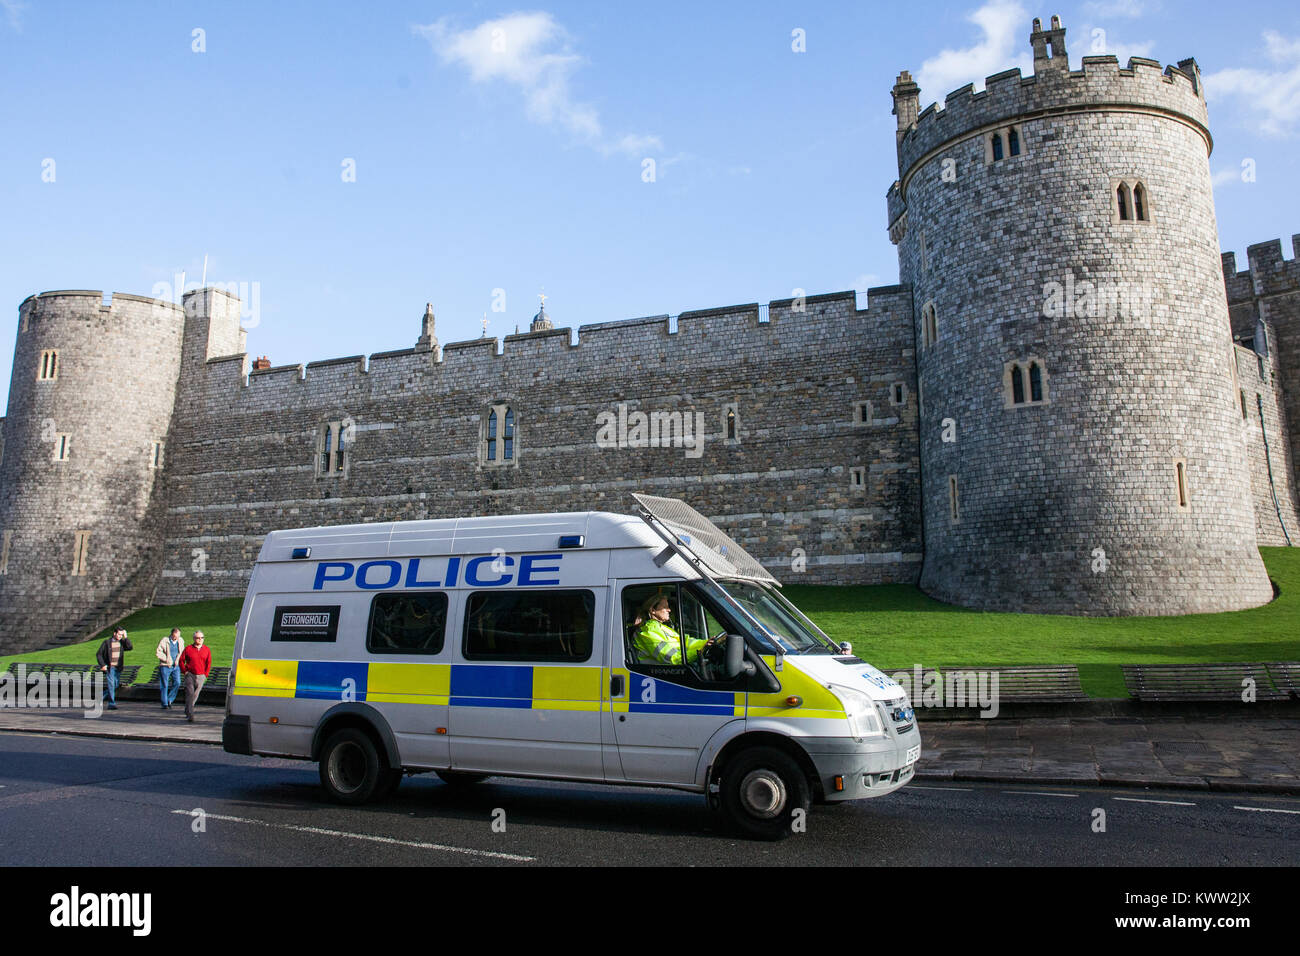 Windsor, UK. 21st October, 2017. A police vehicle passes in front of Windsor Castle shortly before the Changing - Stock Image